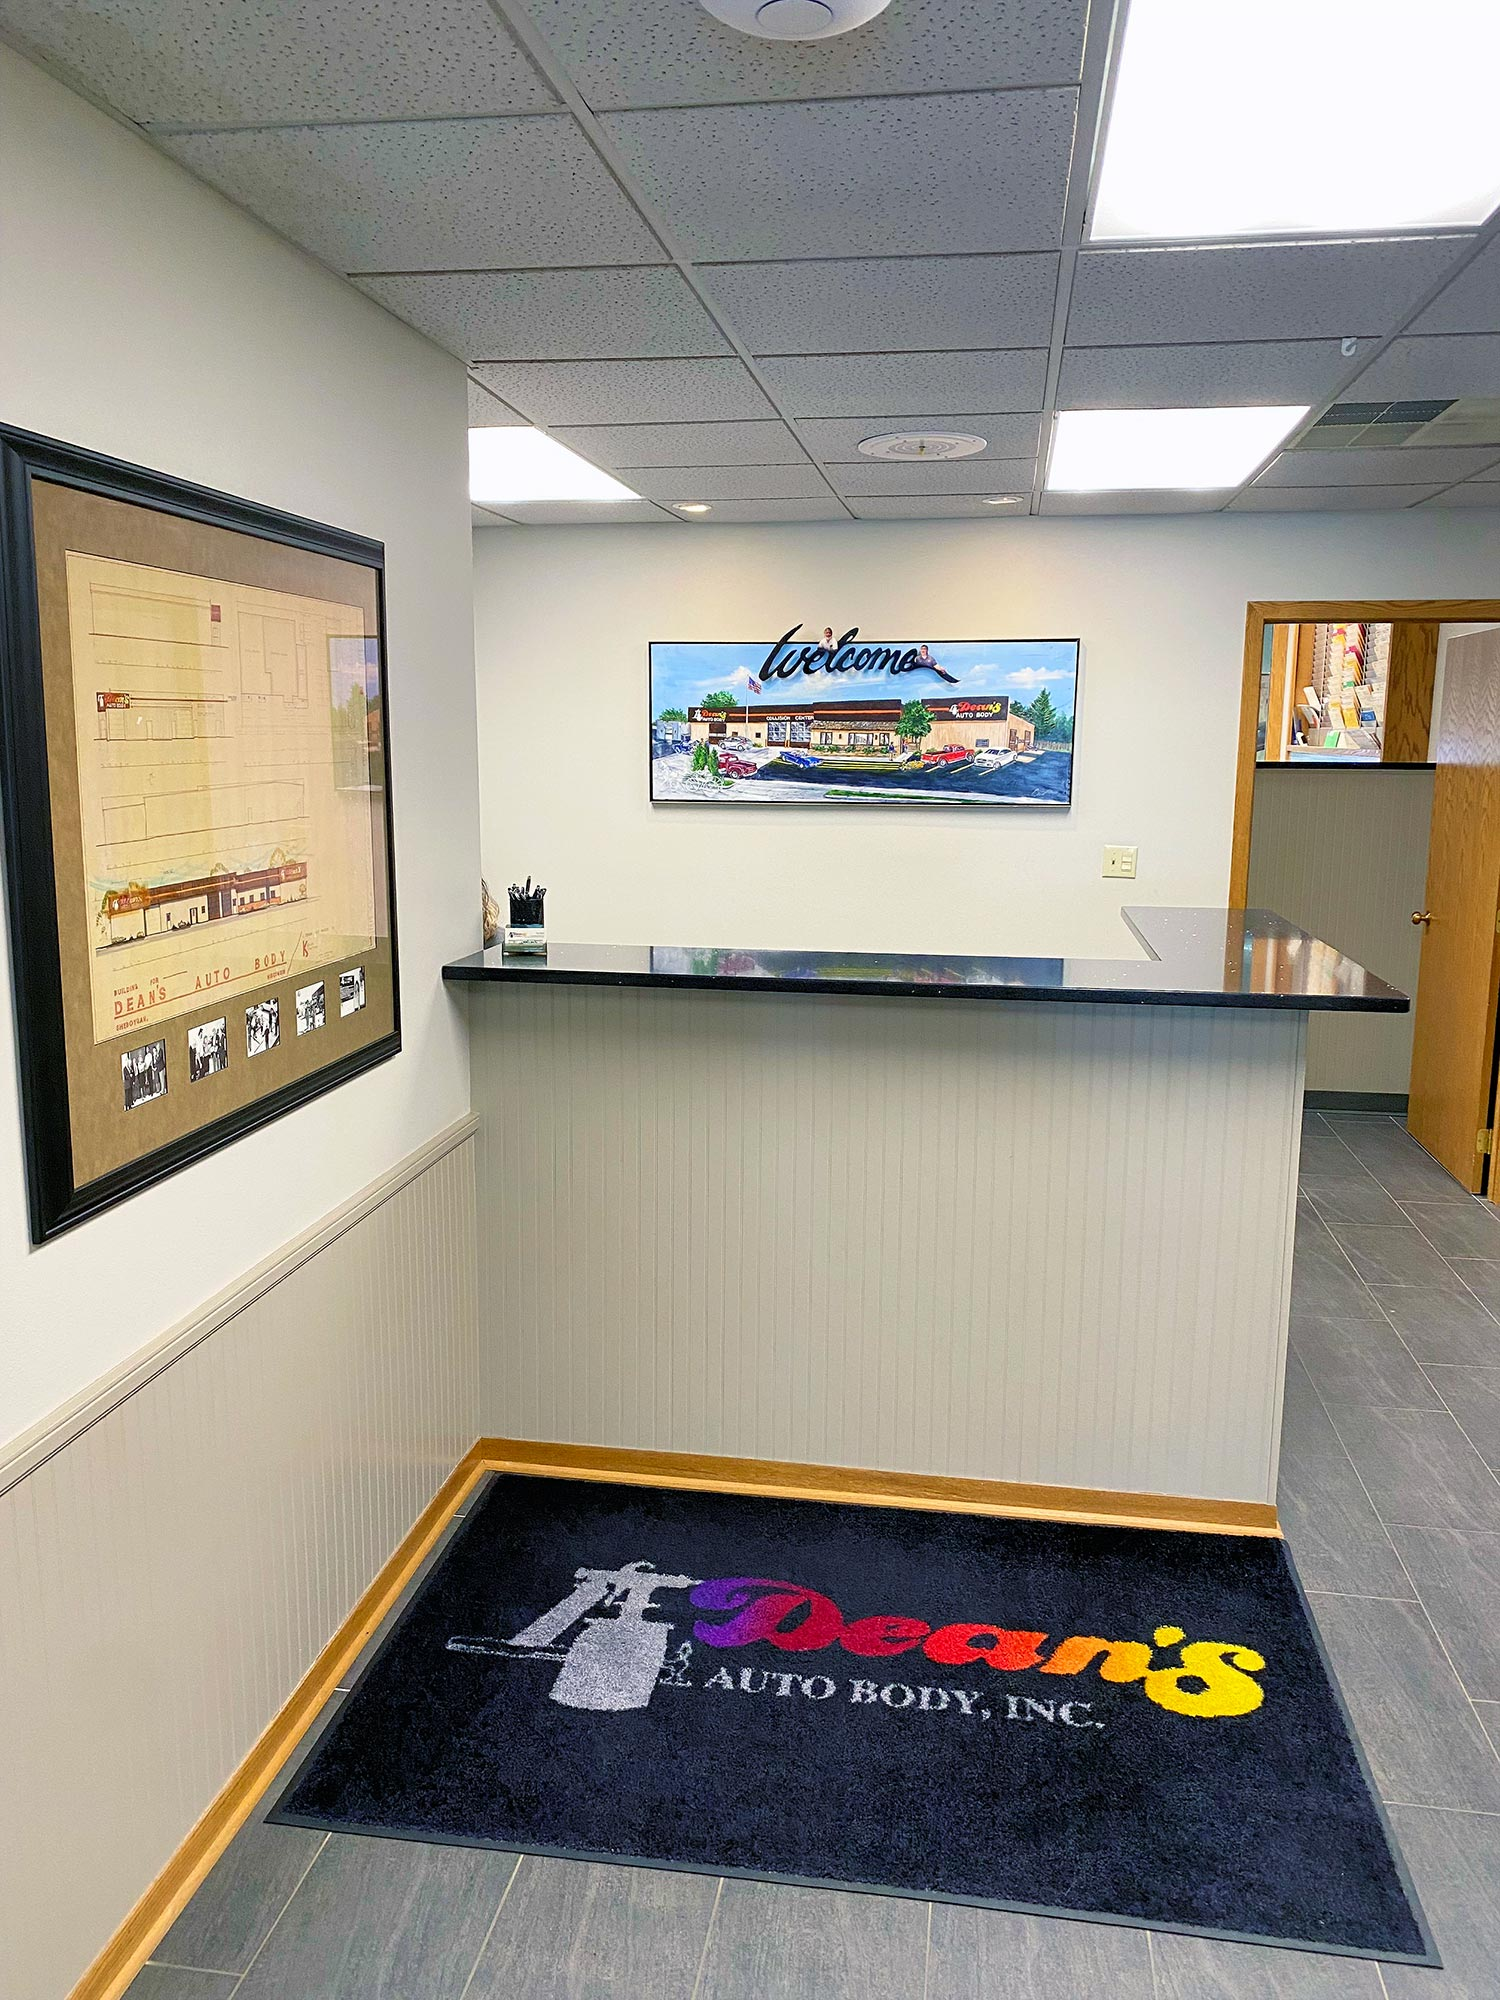 Entrance at Dean's Auto Body and Collision Center in Sheboygan, WI